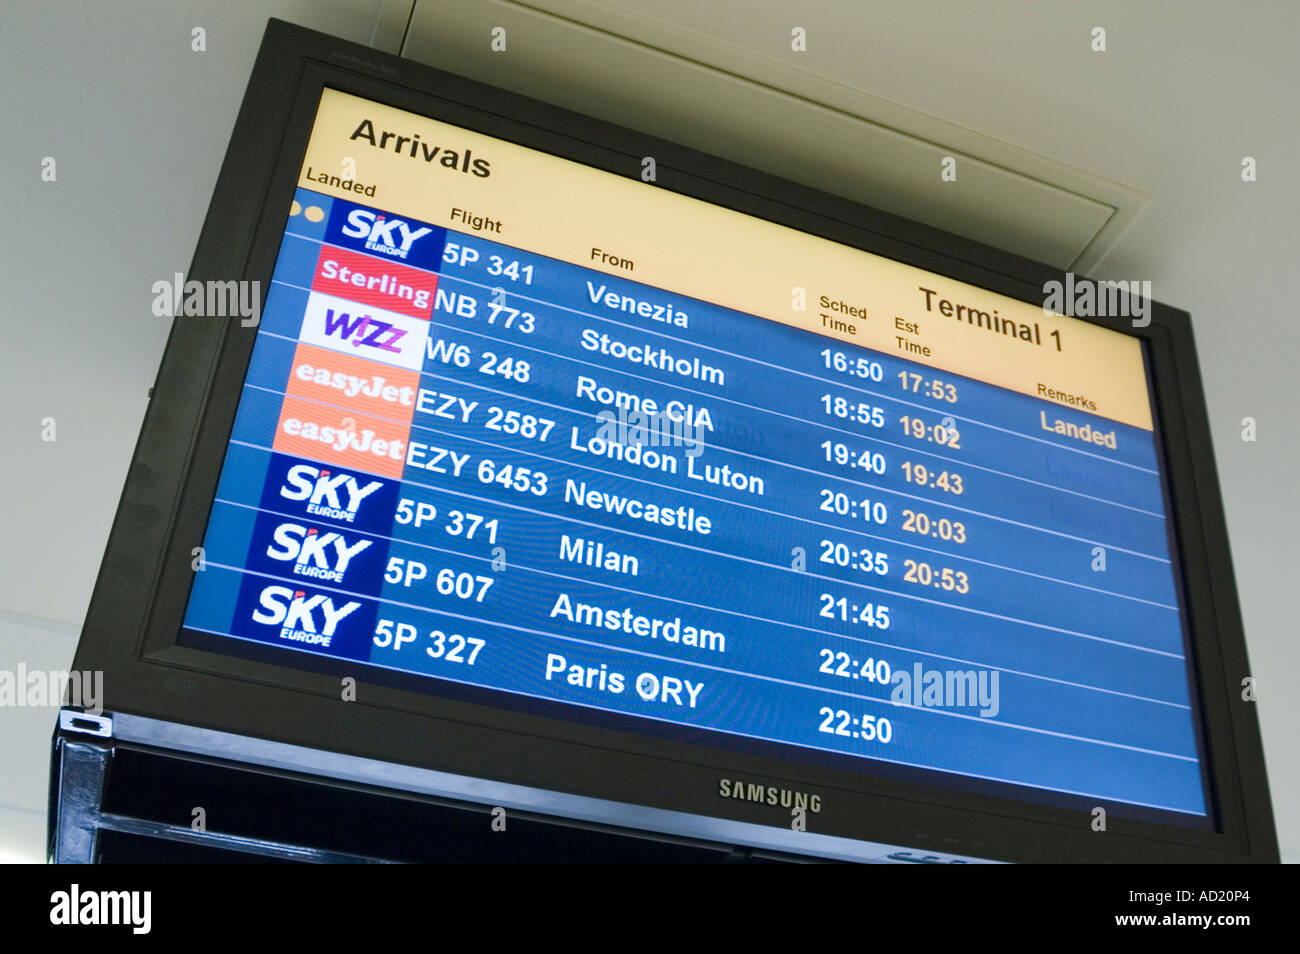 Delays in flight times of arrival mean delays in take off - Stock Image